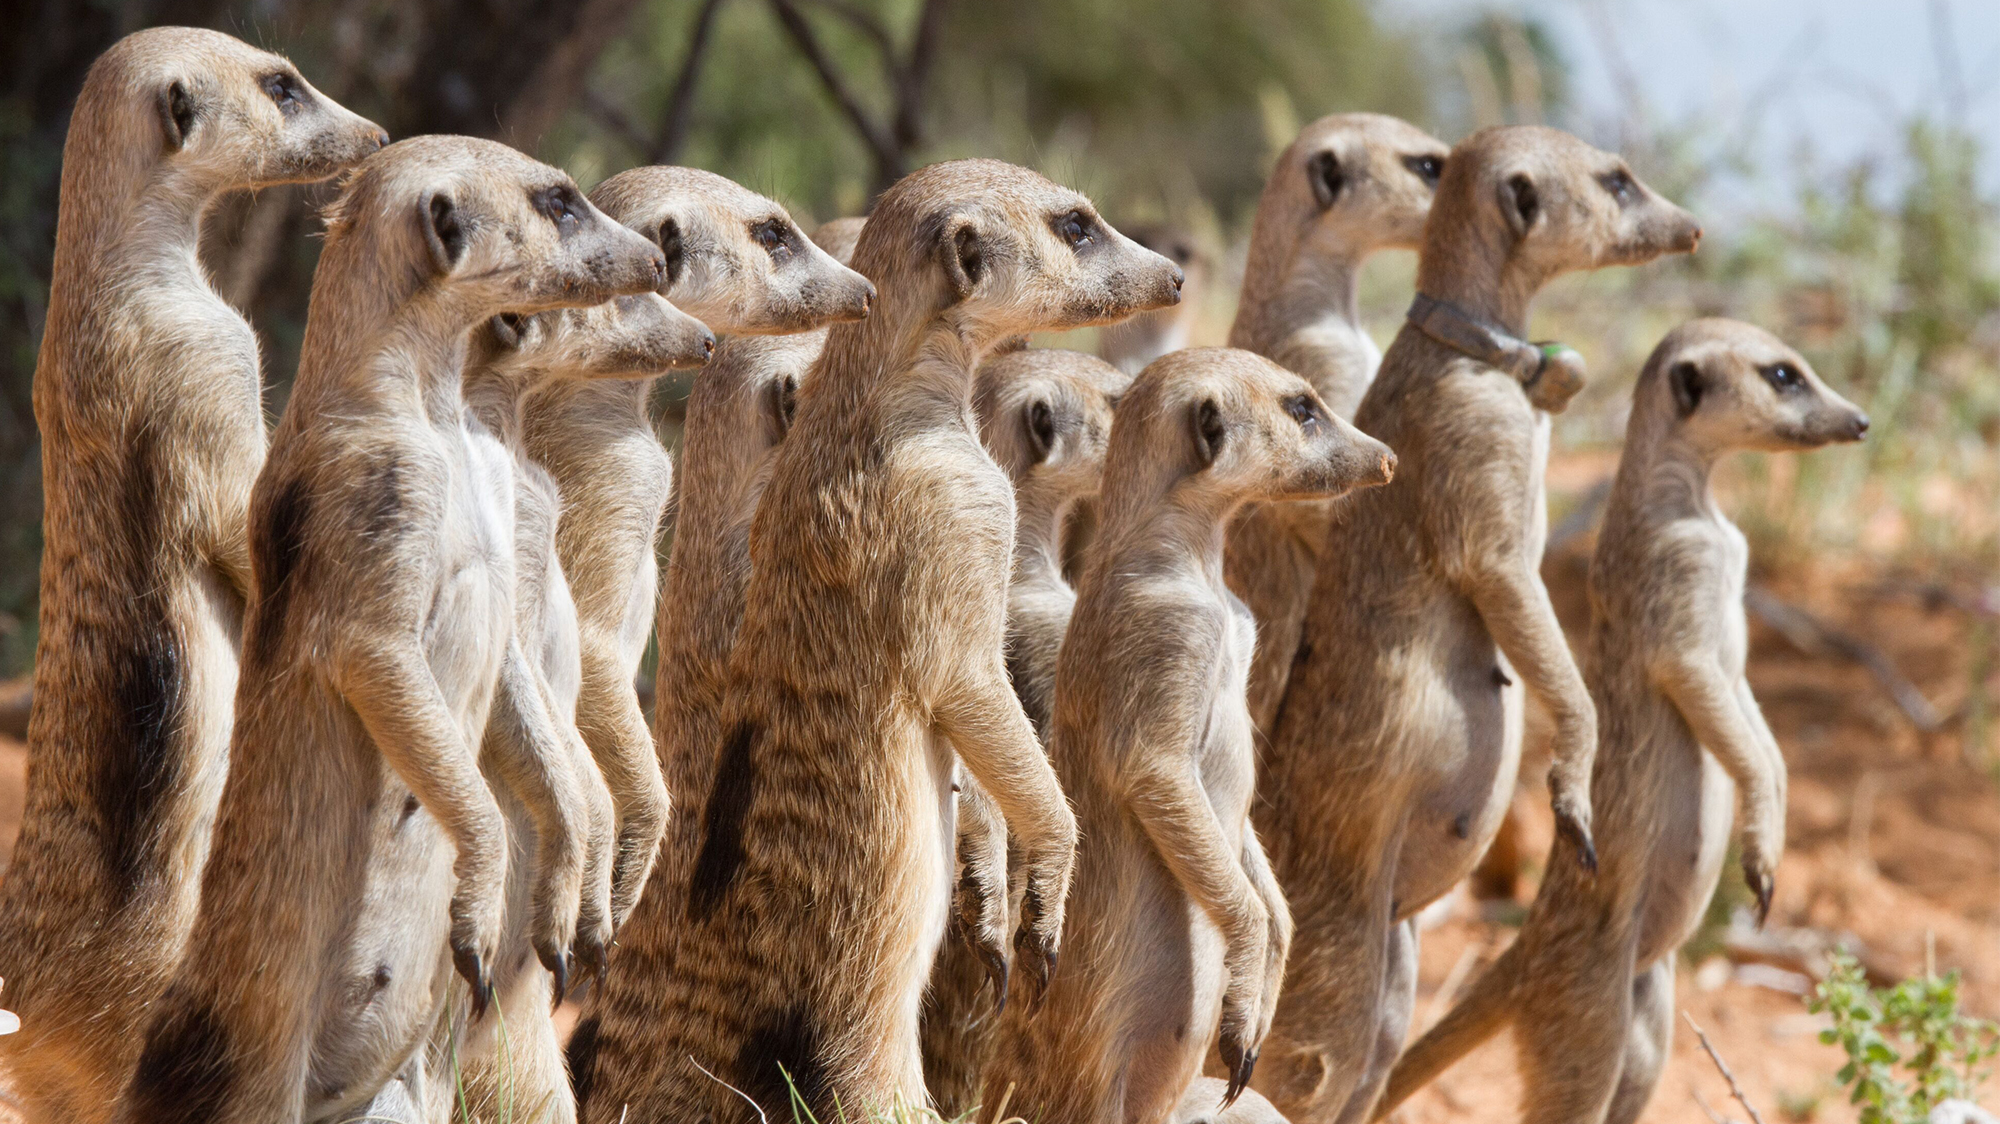 Meerkats are cooperative breeders that live in social groups. A dominant female monopolizes most of the reproduction, while subordinate helpers assist in raising her offspring. (UZH)